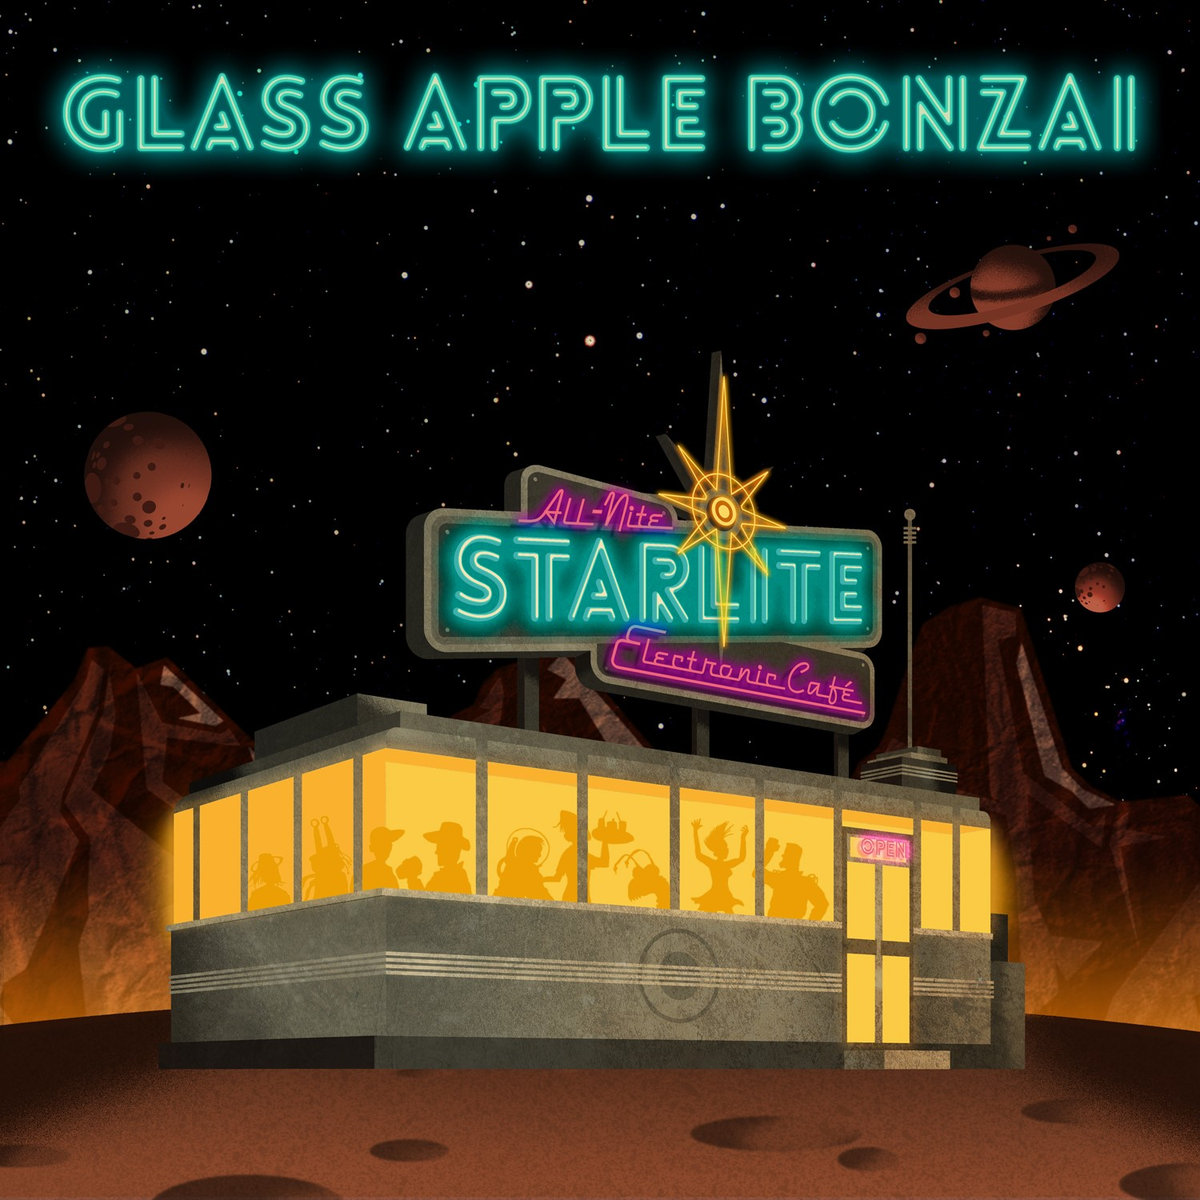 "Glass Apple Bonzai, ""The All-Nite Starlite Electronic Café"""